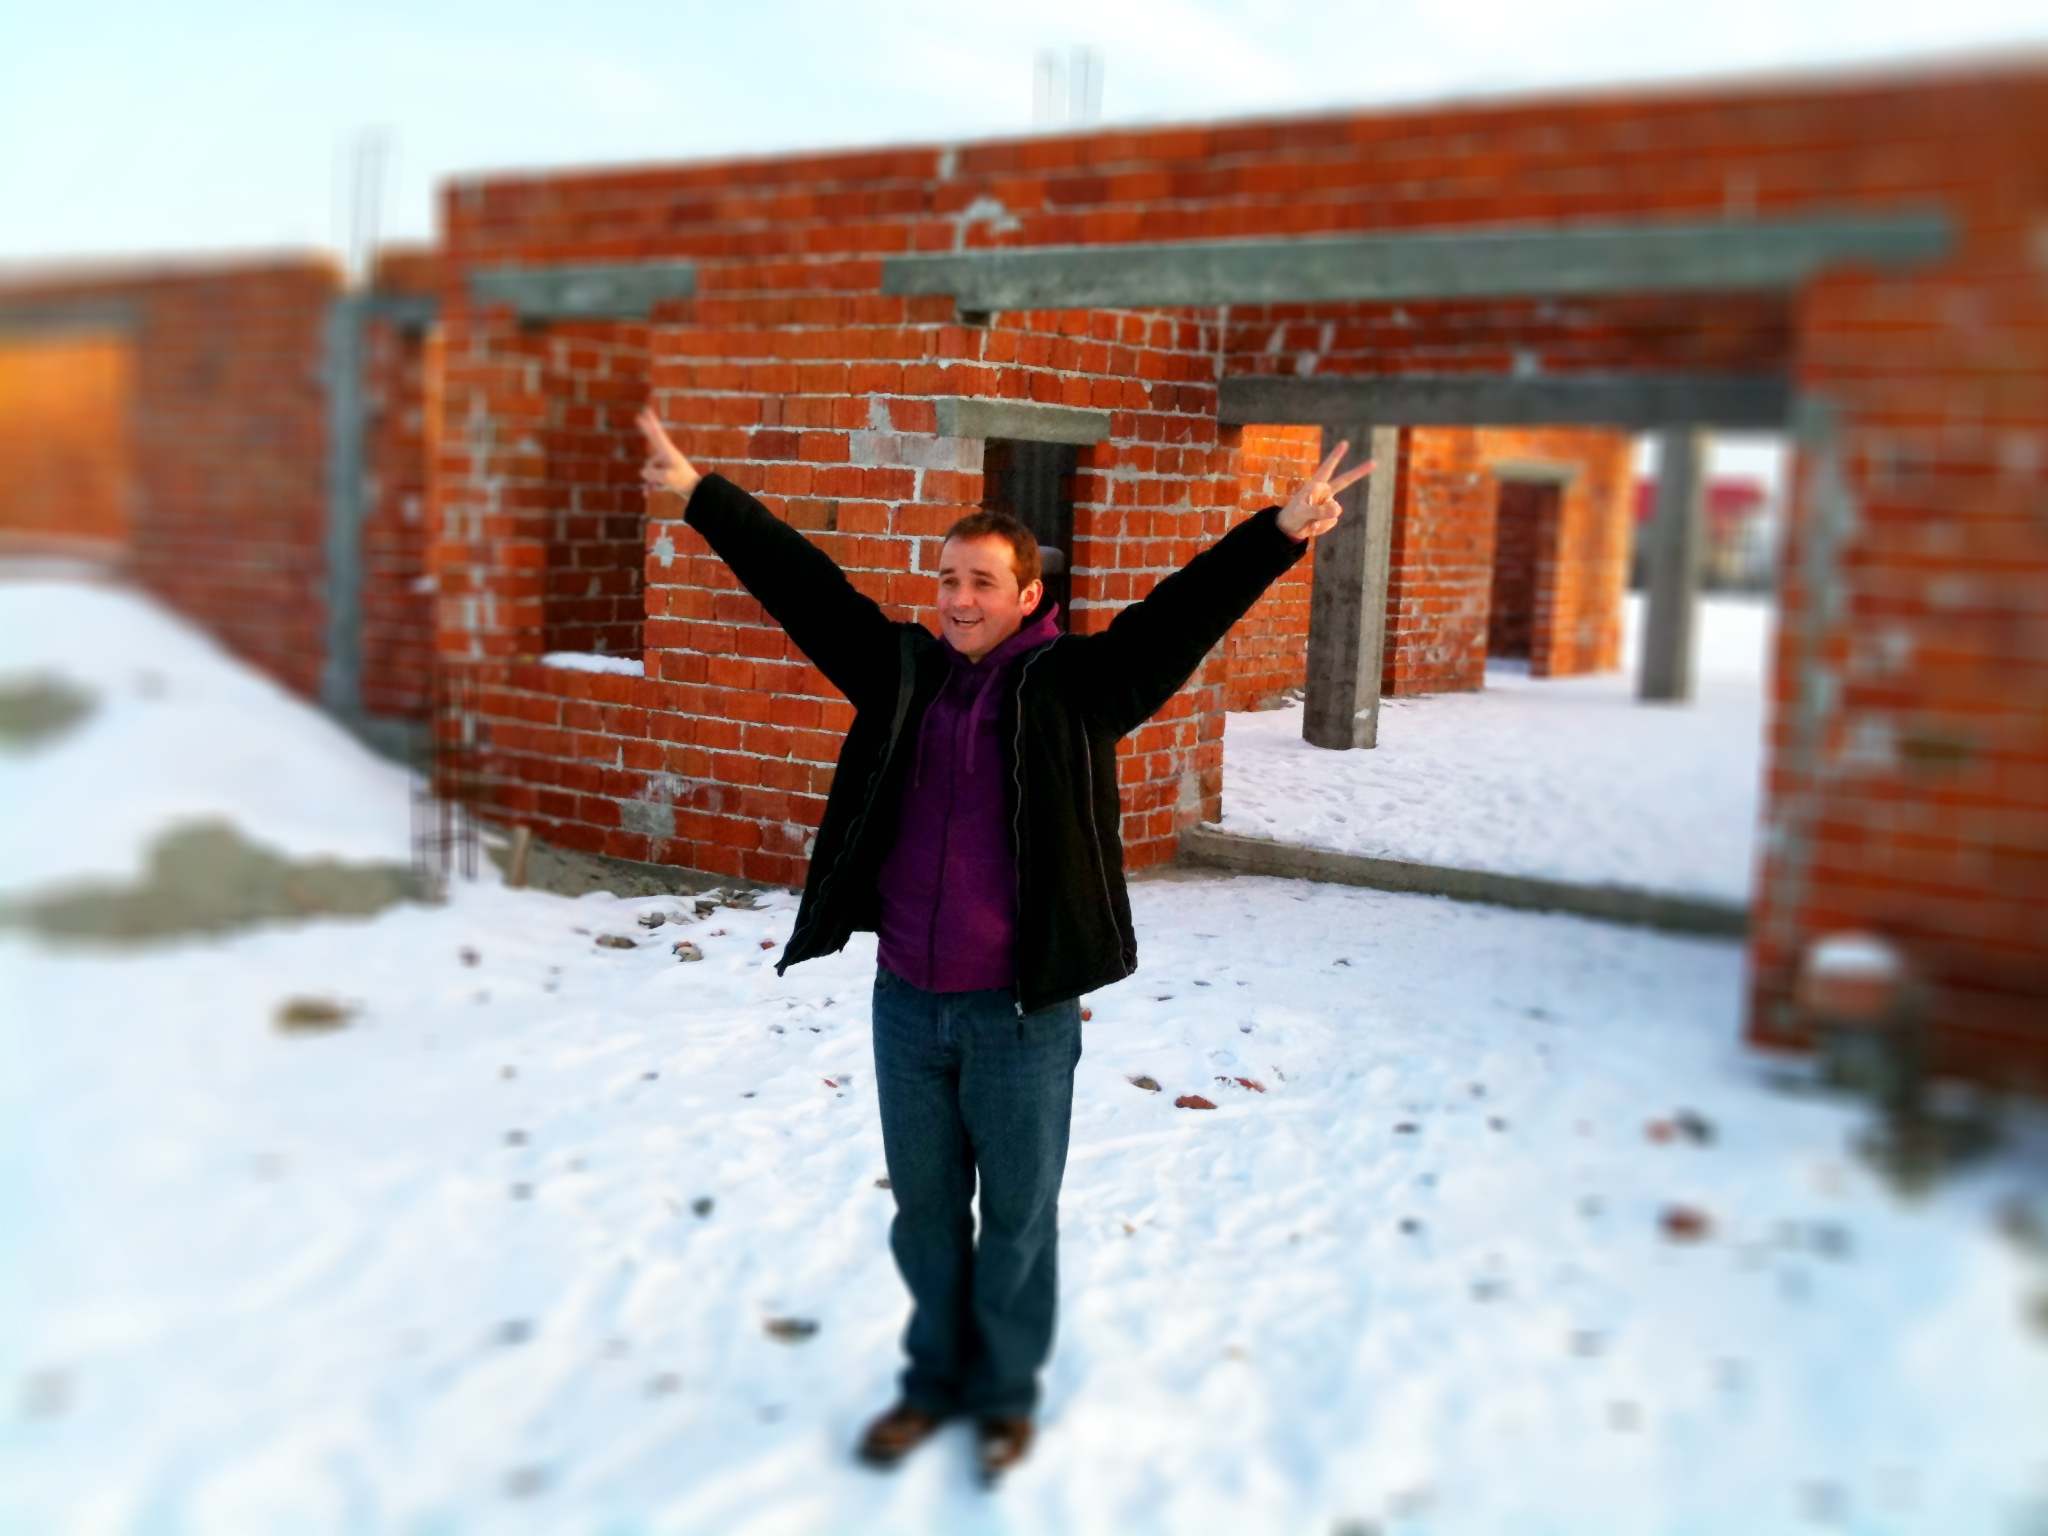 Ovidiu in front of the House of Joy. Construction will start again in the spring.